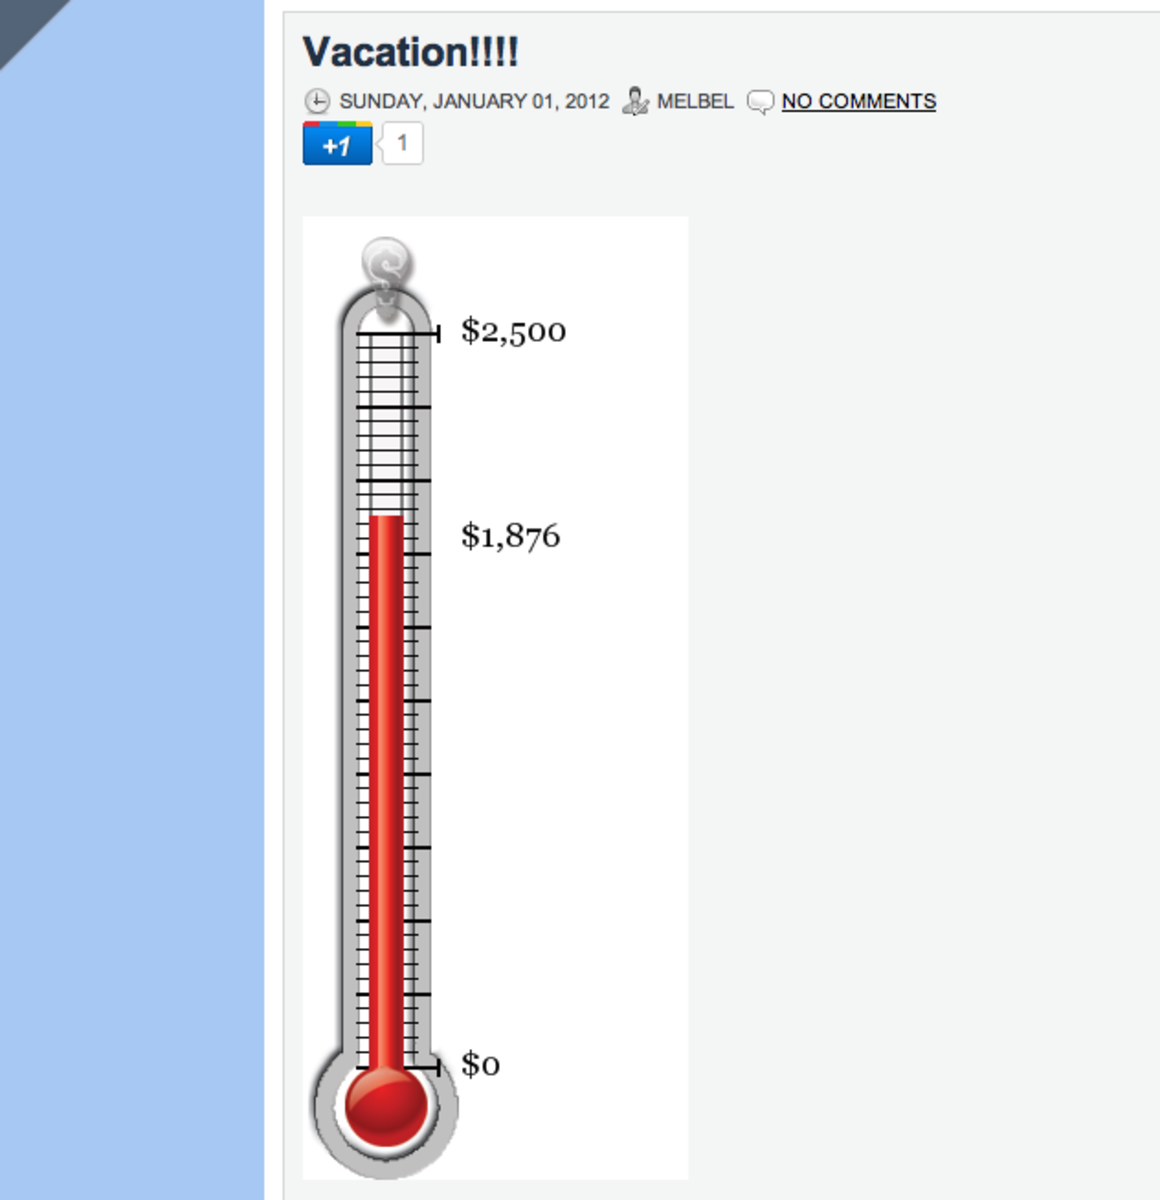 A fundraiser thermometer